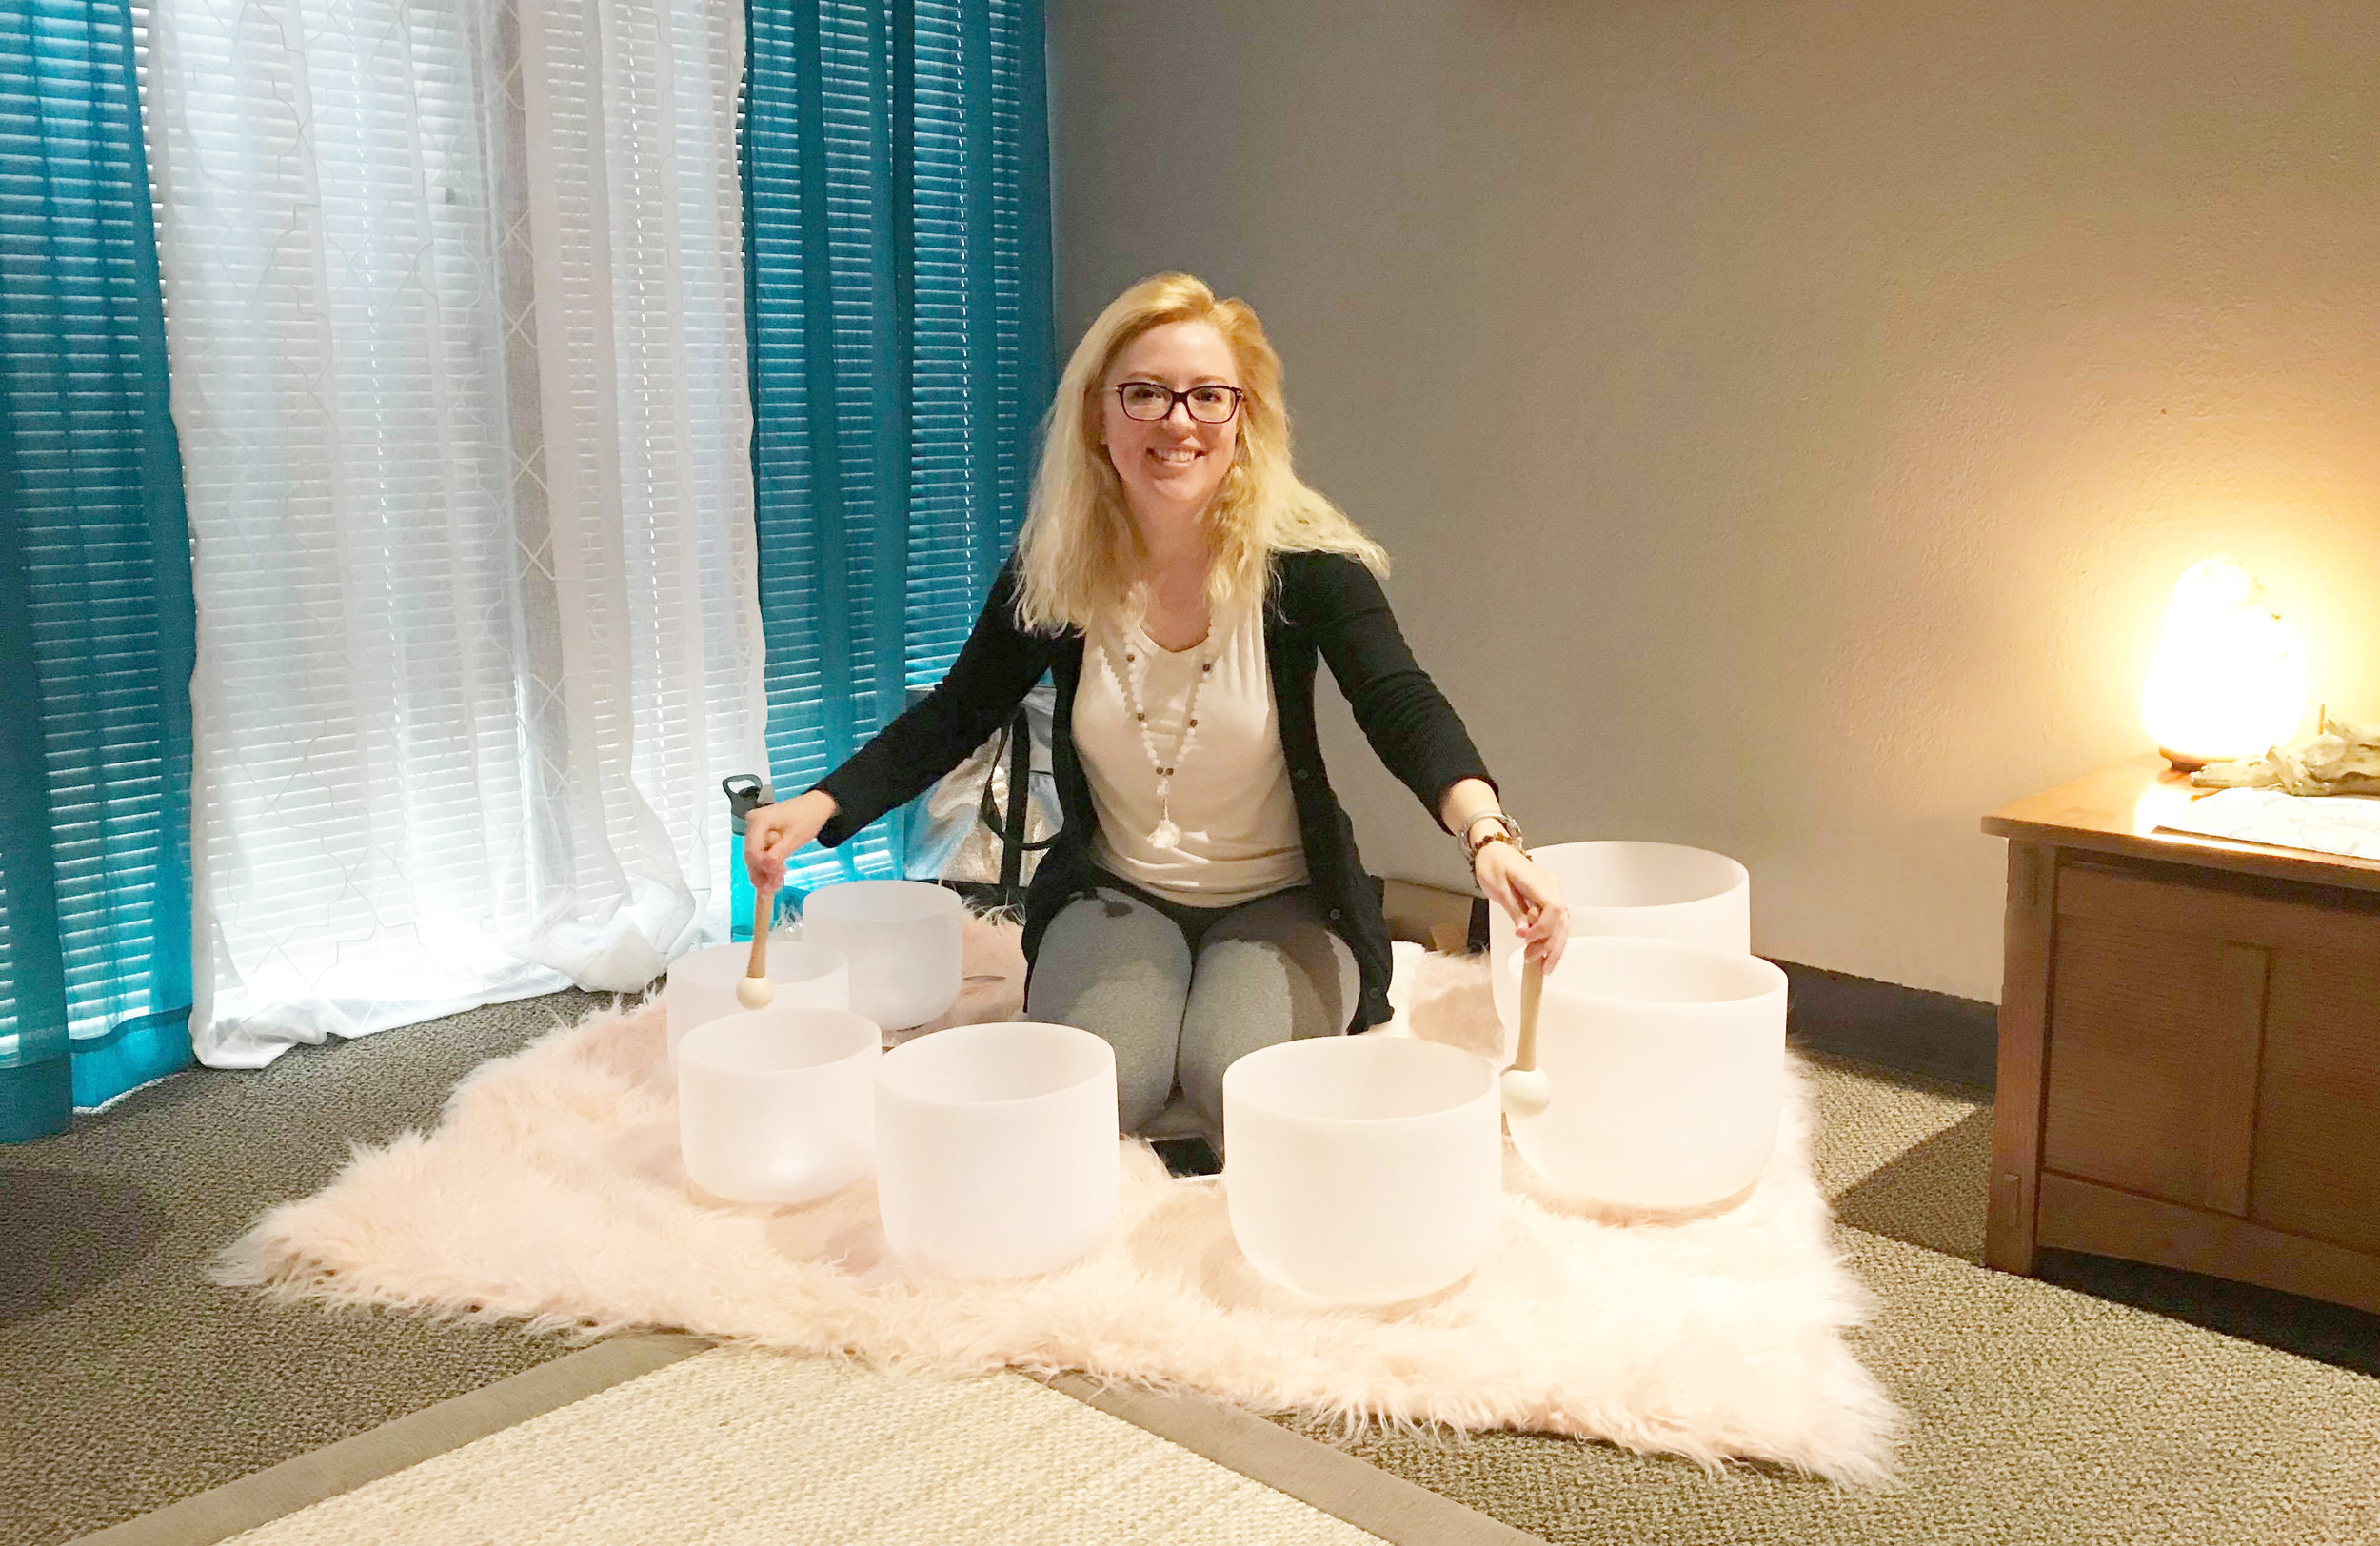 Sound Specialist Shelby Melissa at a Group Sound Immersion Event at Transcend Wellness